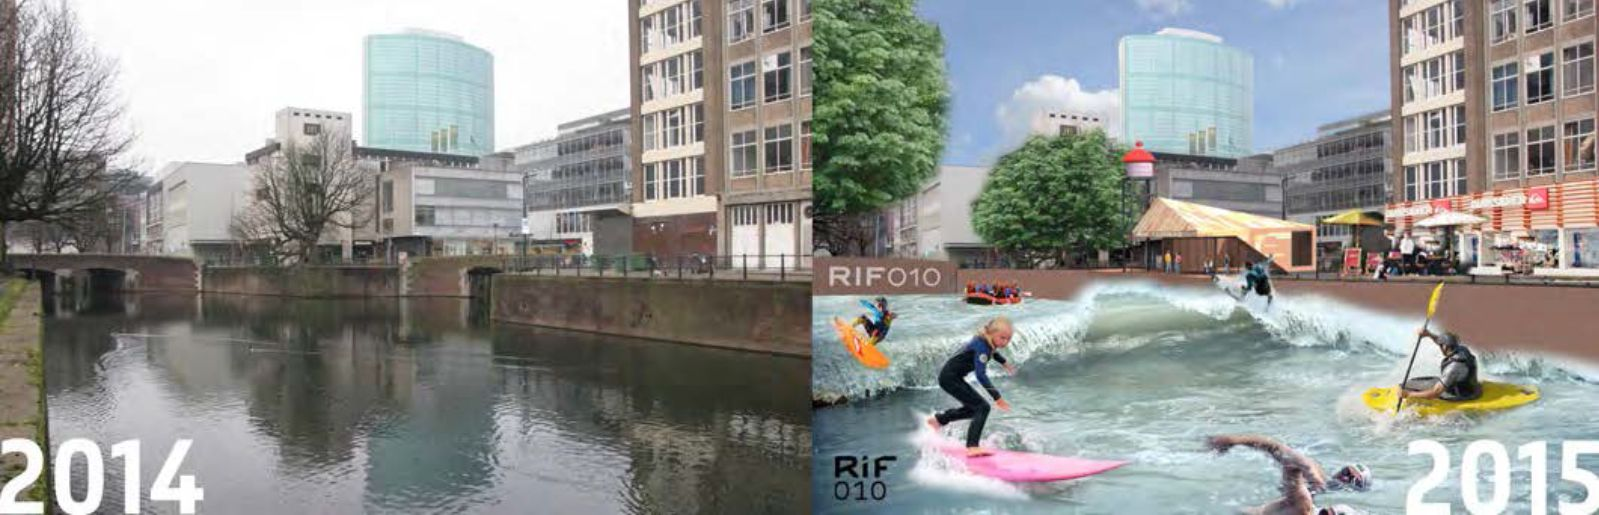 RiF010-Water-Sports-Arena-in-Rotterdam-02